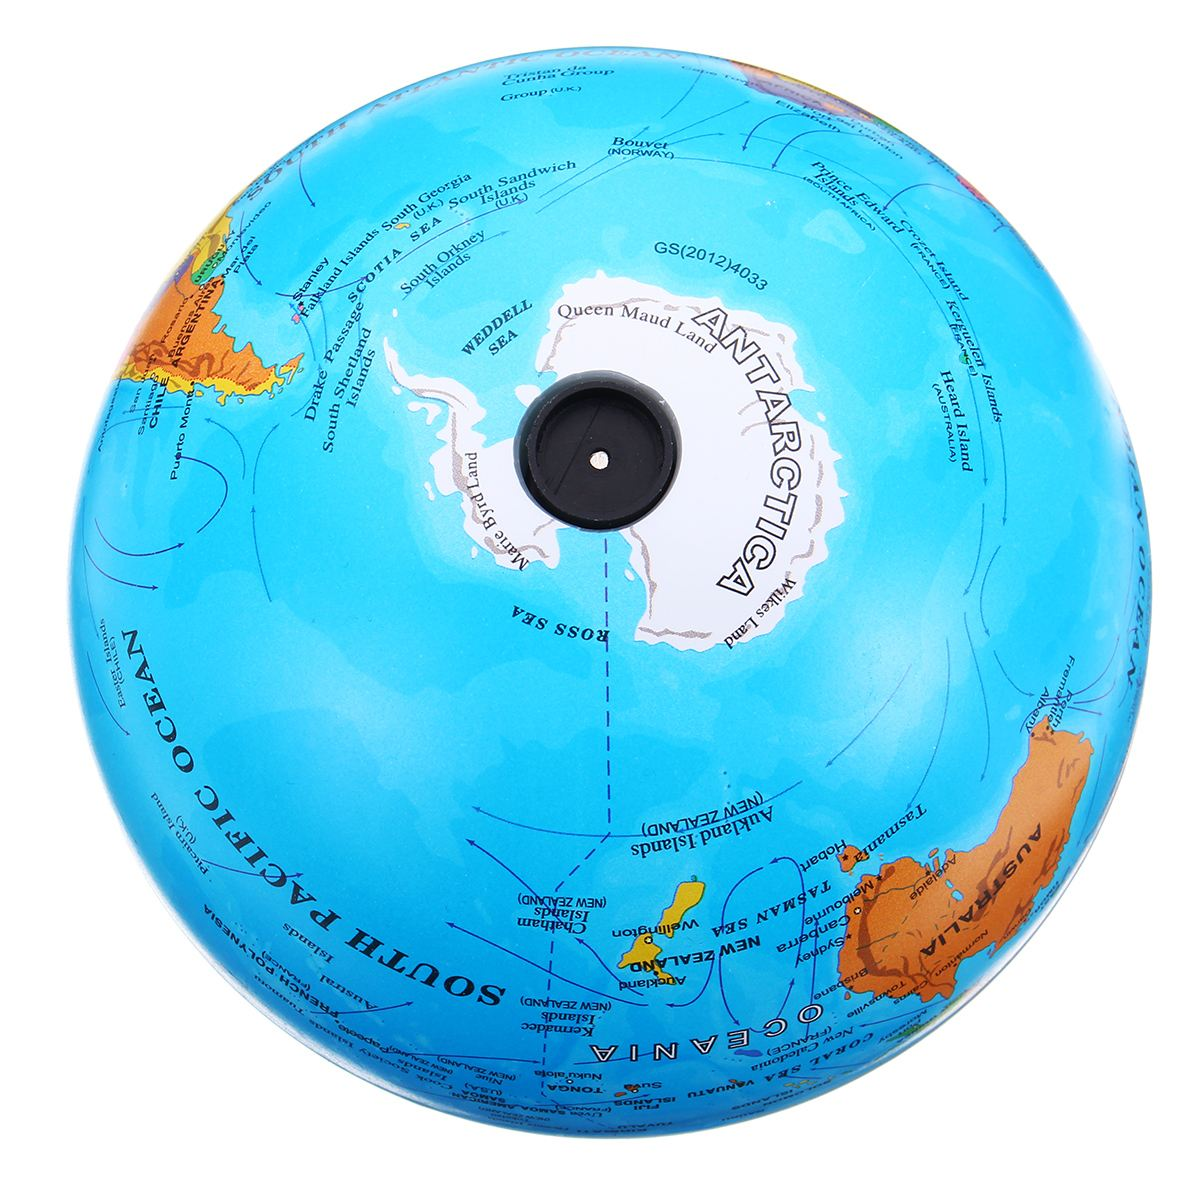 Kiwarm 15cm self rotating world globe earth map led color light kiwarm 15cm self rotating world globe earth map led color light geography educational toy home office decoration in figurines miniatures from home gumiabroncs Image collections